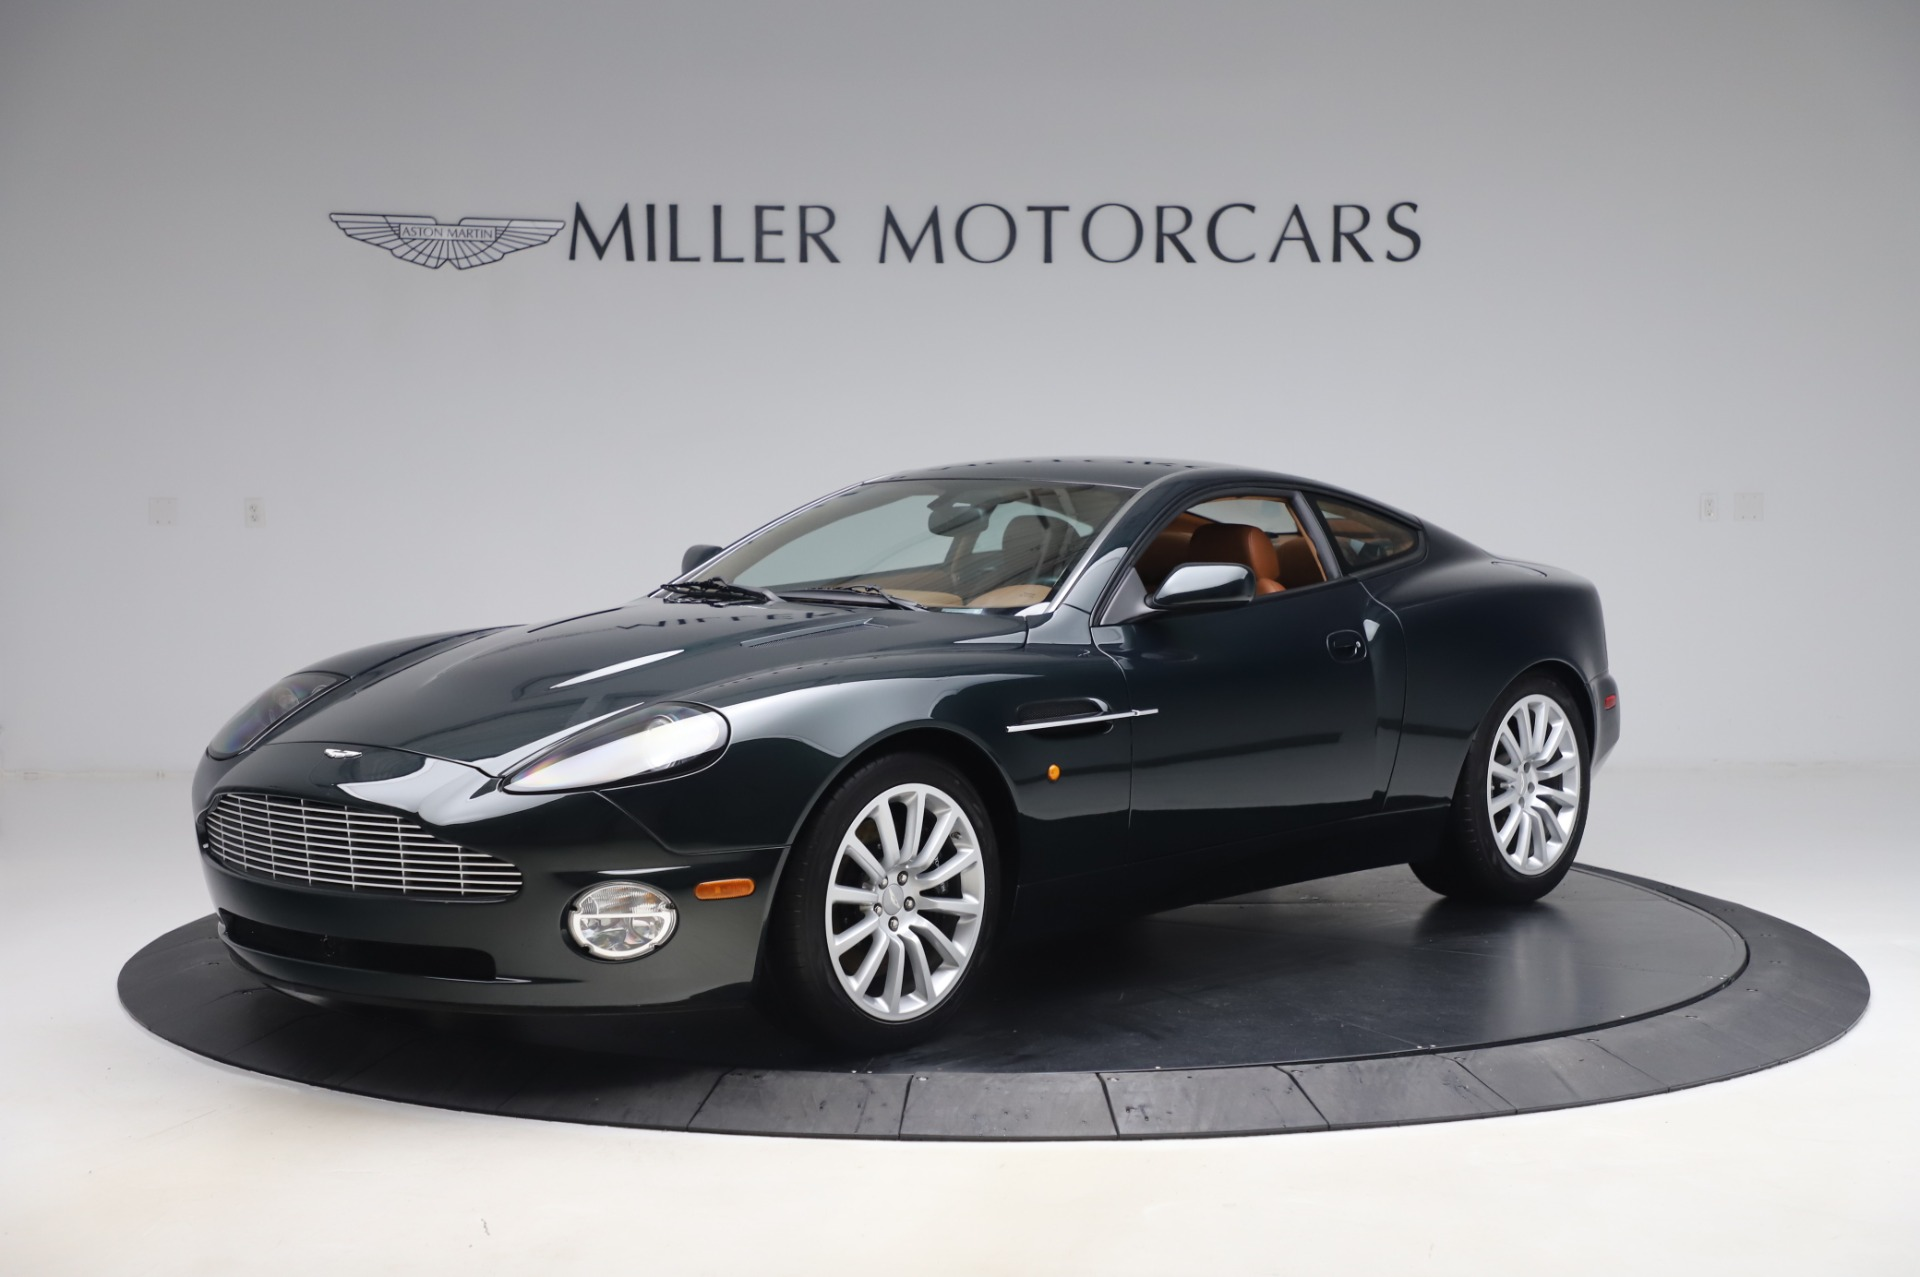 Used 2003 Aston Martin V12 Vanquish Coupe for sale $79,900 at Alfa Romeo of Westport in Westport CT 06880 1